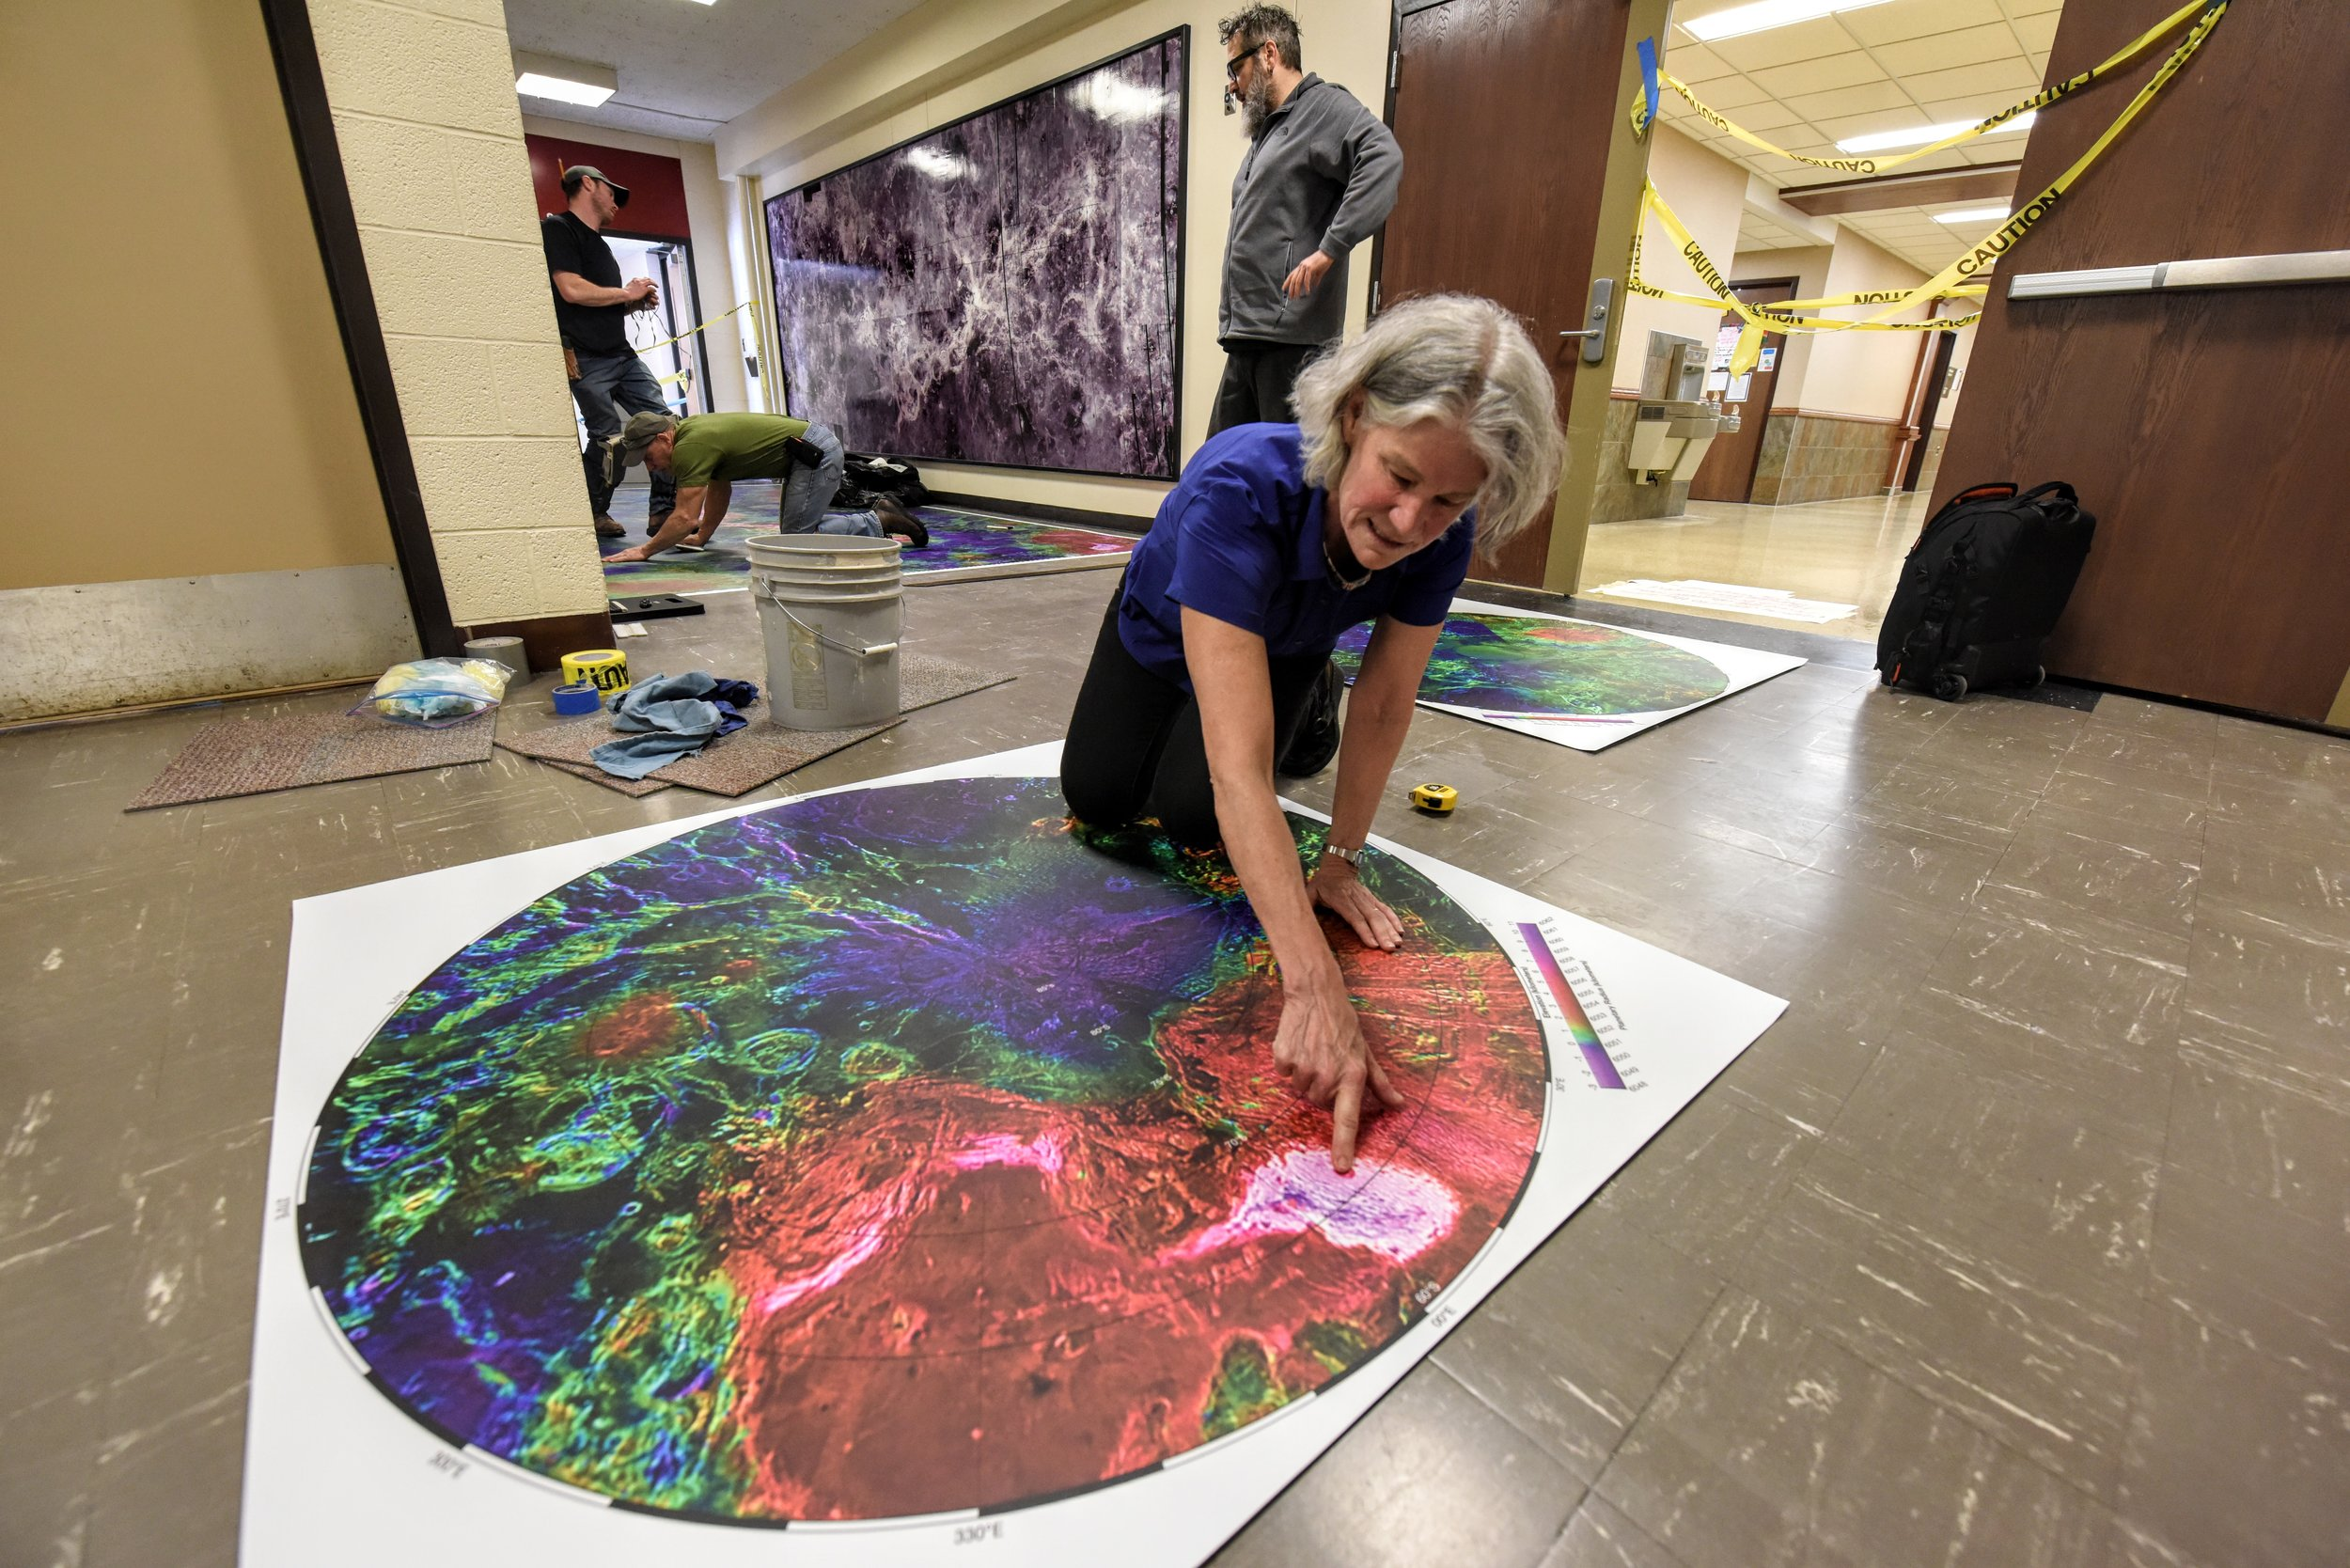 Hansen kneeling over a Venus map during installation. Photo by Valerie Coit